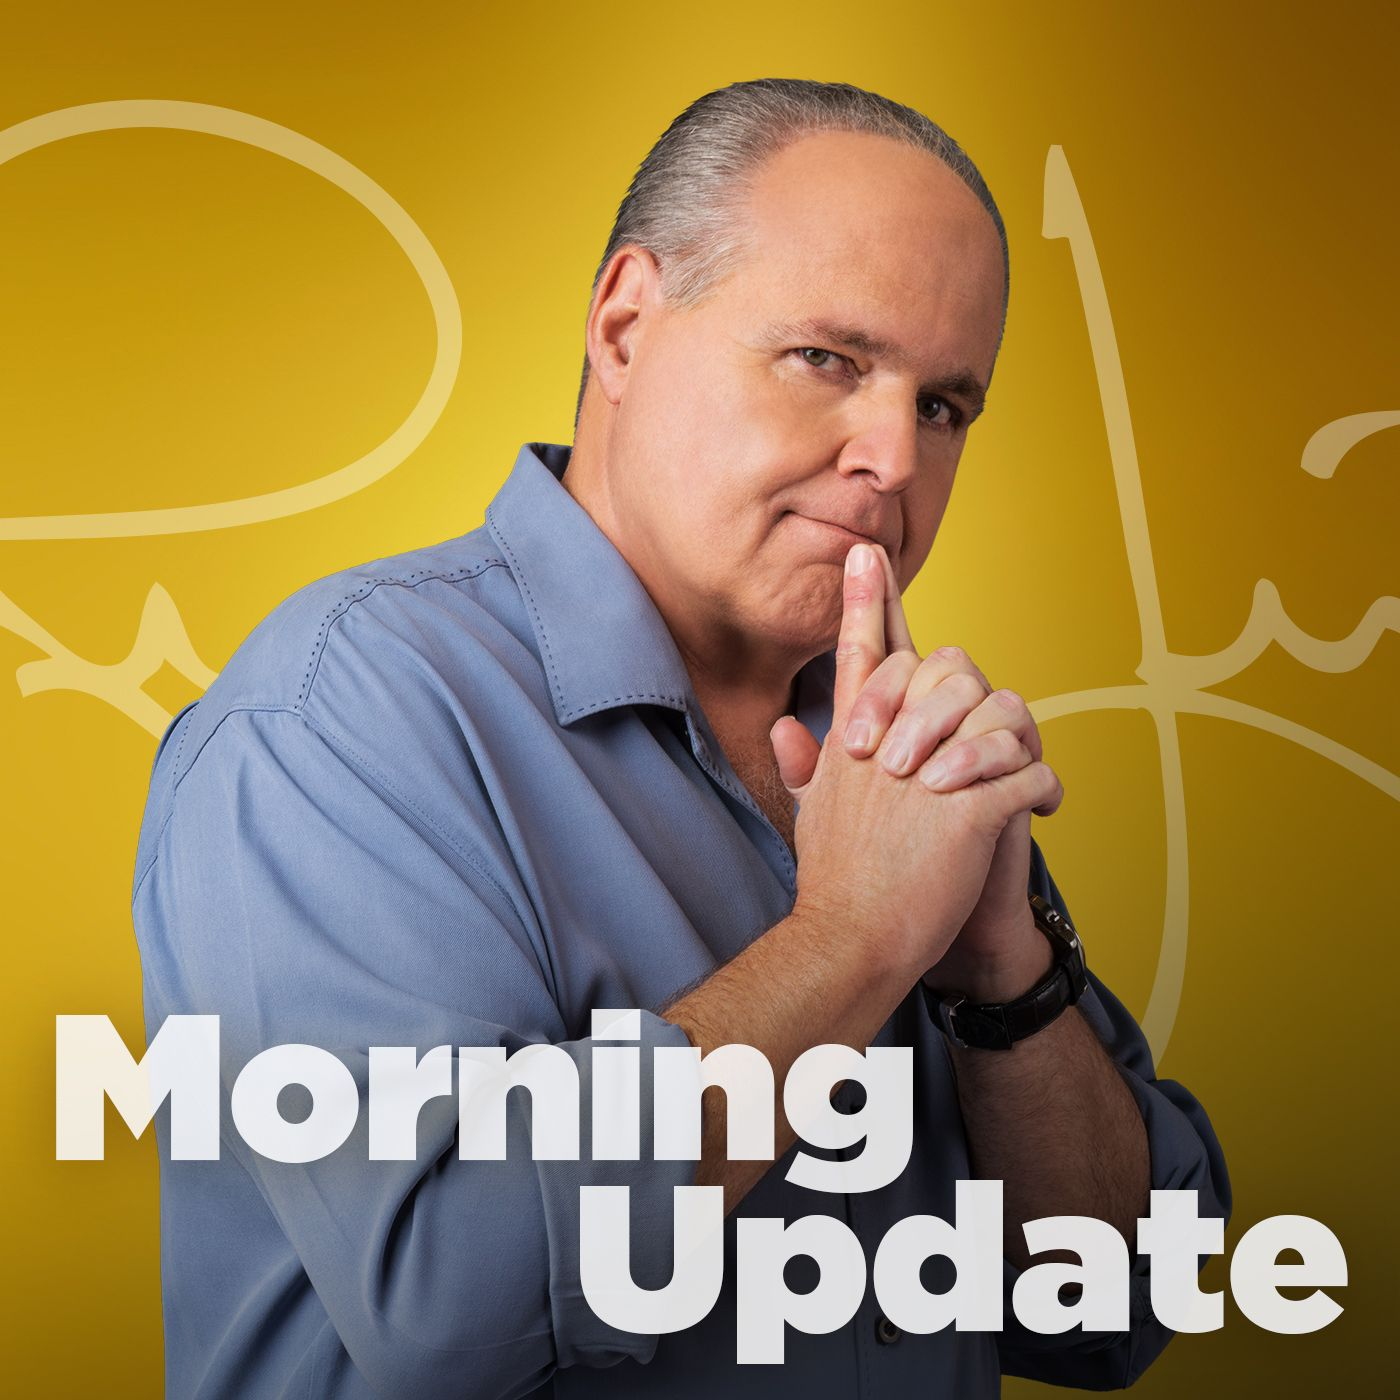 Rush Limbaugh Jun 17, 2020